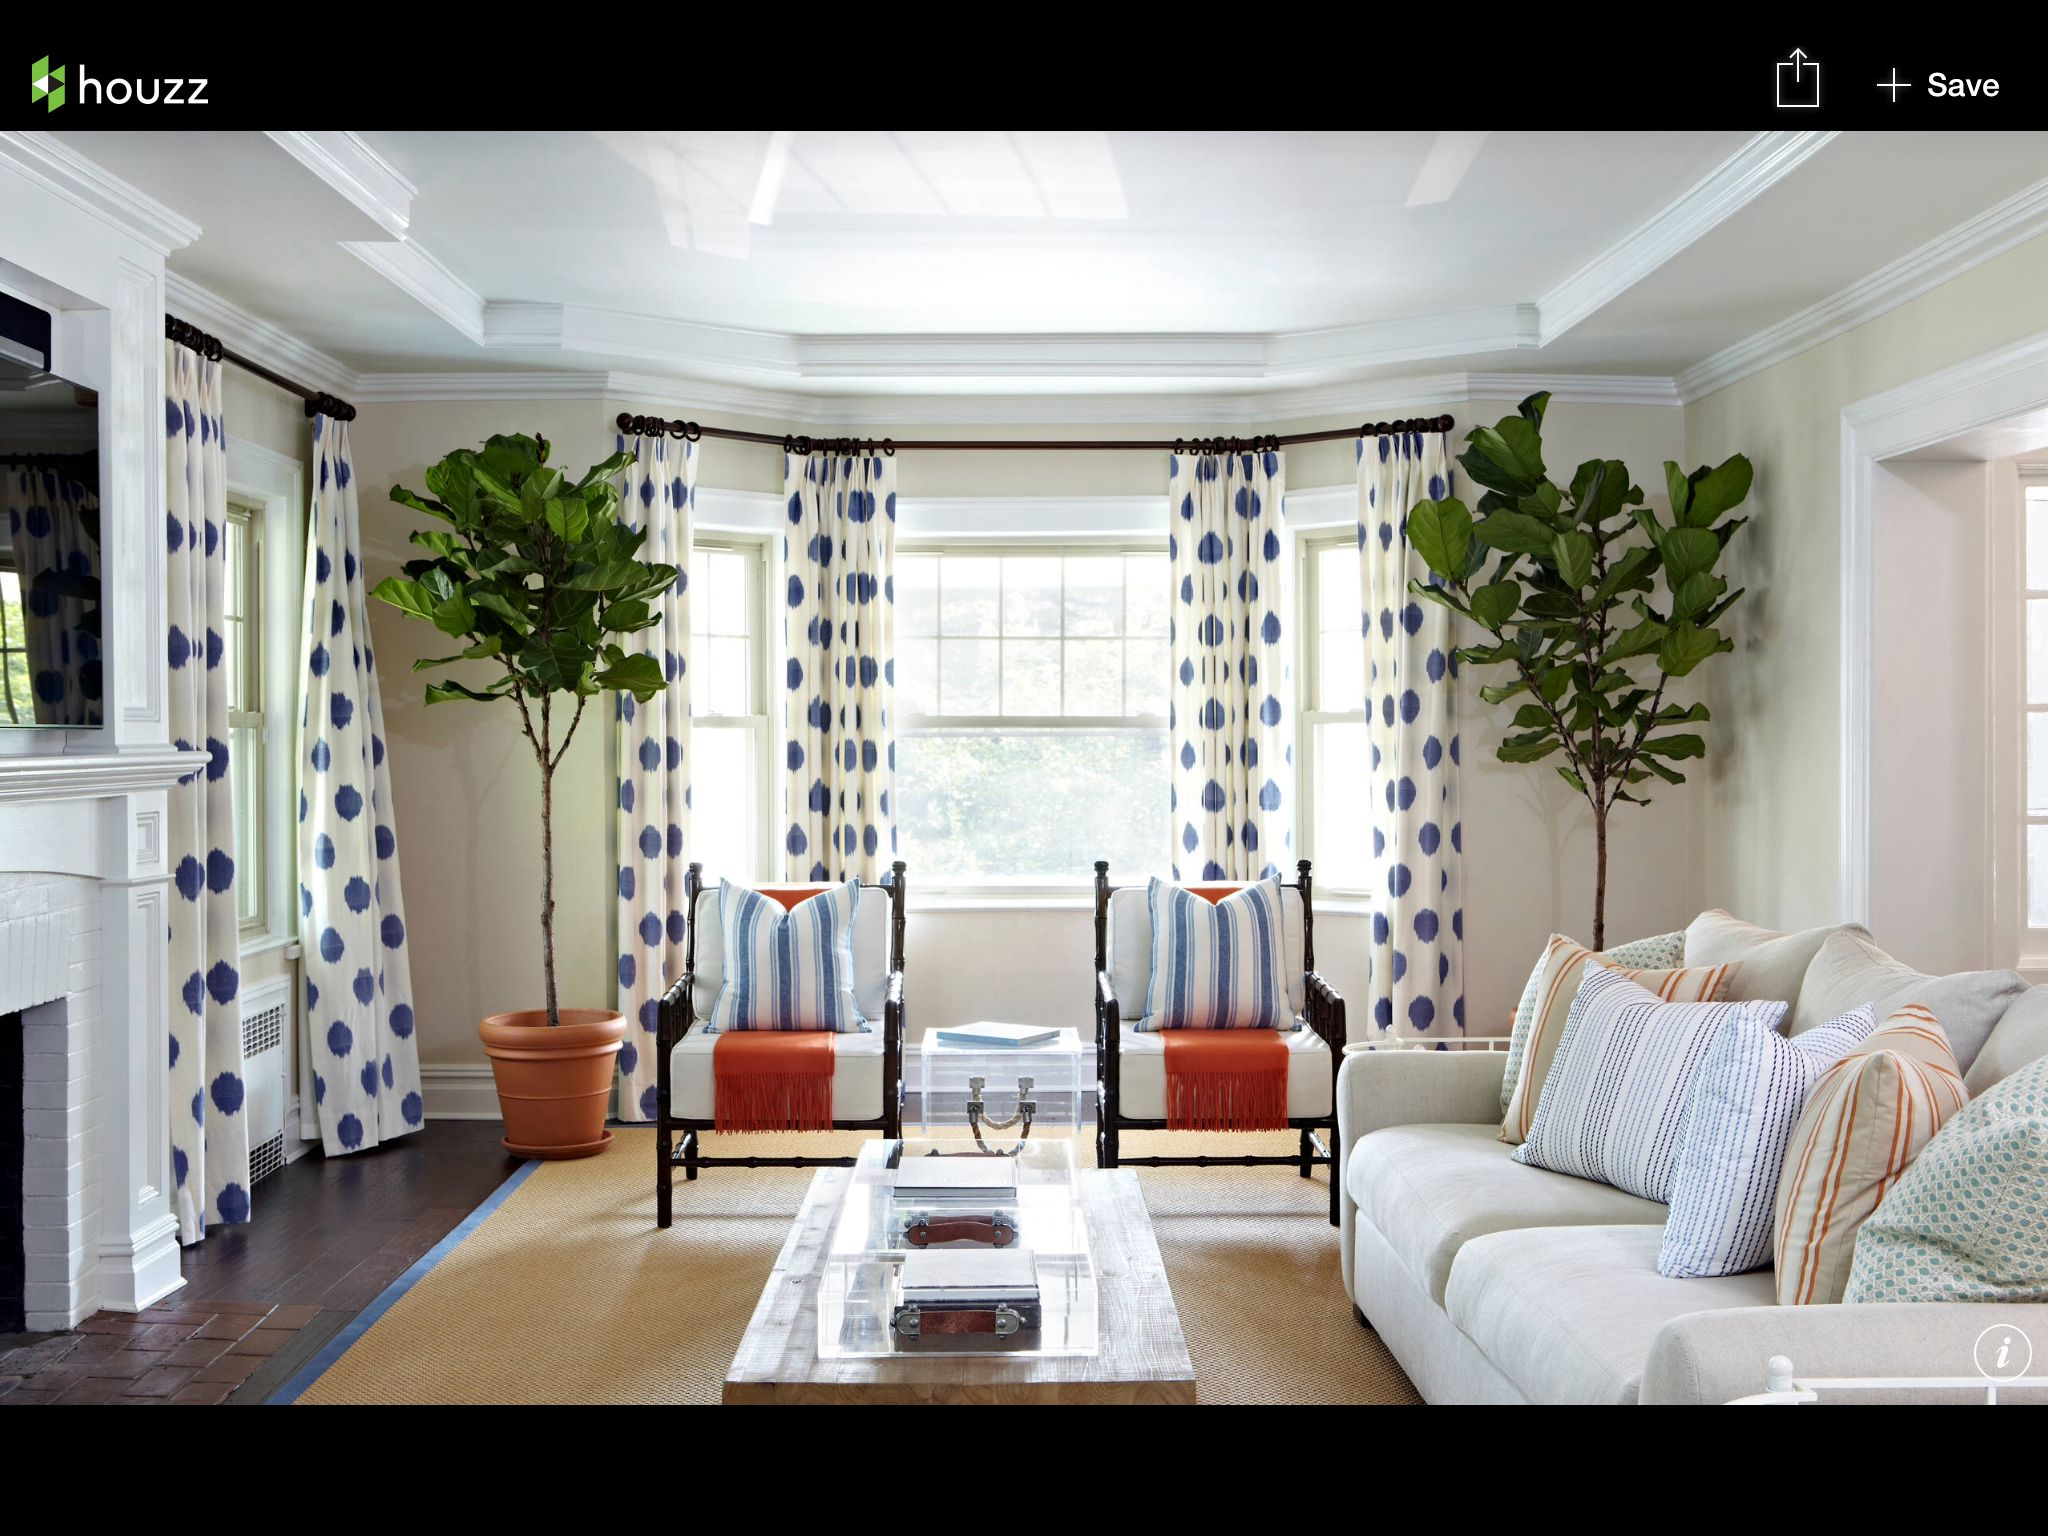 Living Room Design Houzz Living Room Inspiration From Houzz  House Inspiration  Pinterest